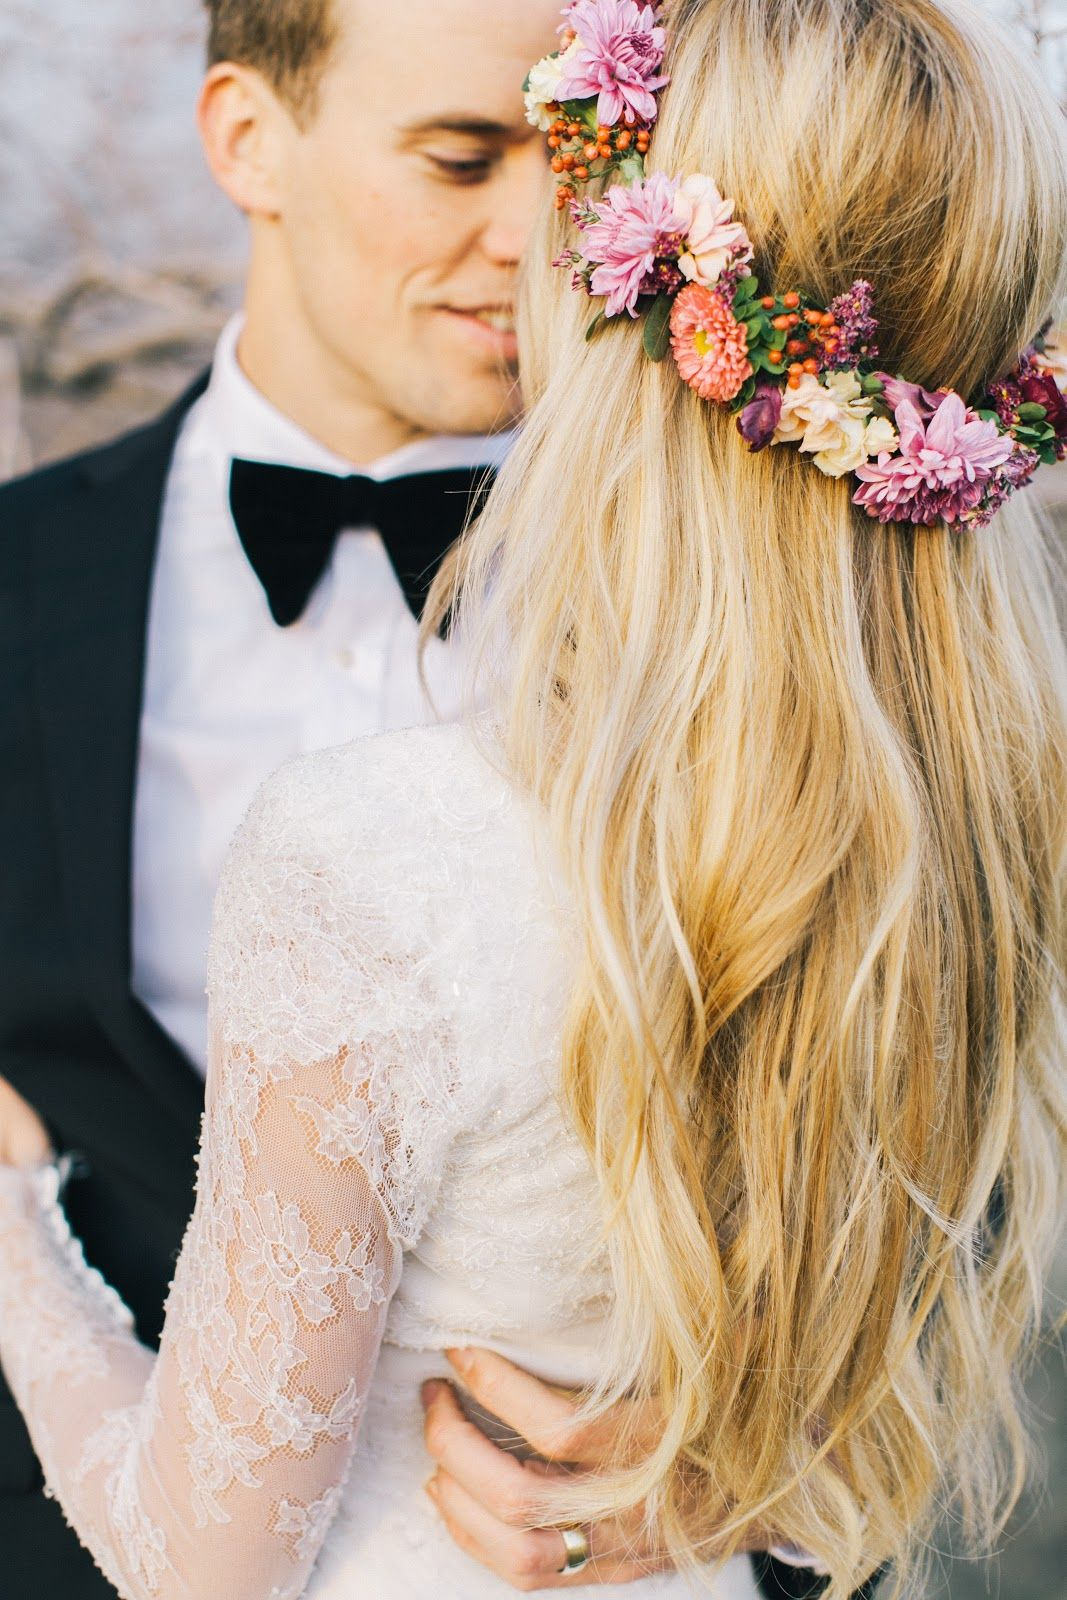 Barefoot blonde and her gorgeous flower crown wedding bridal barefoot blonde and her gorgeous flower crown izmirmasajfo